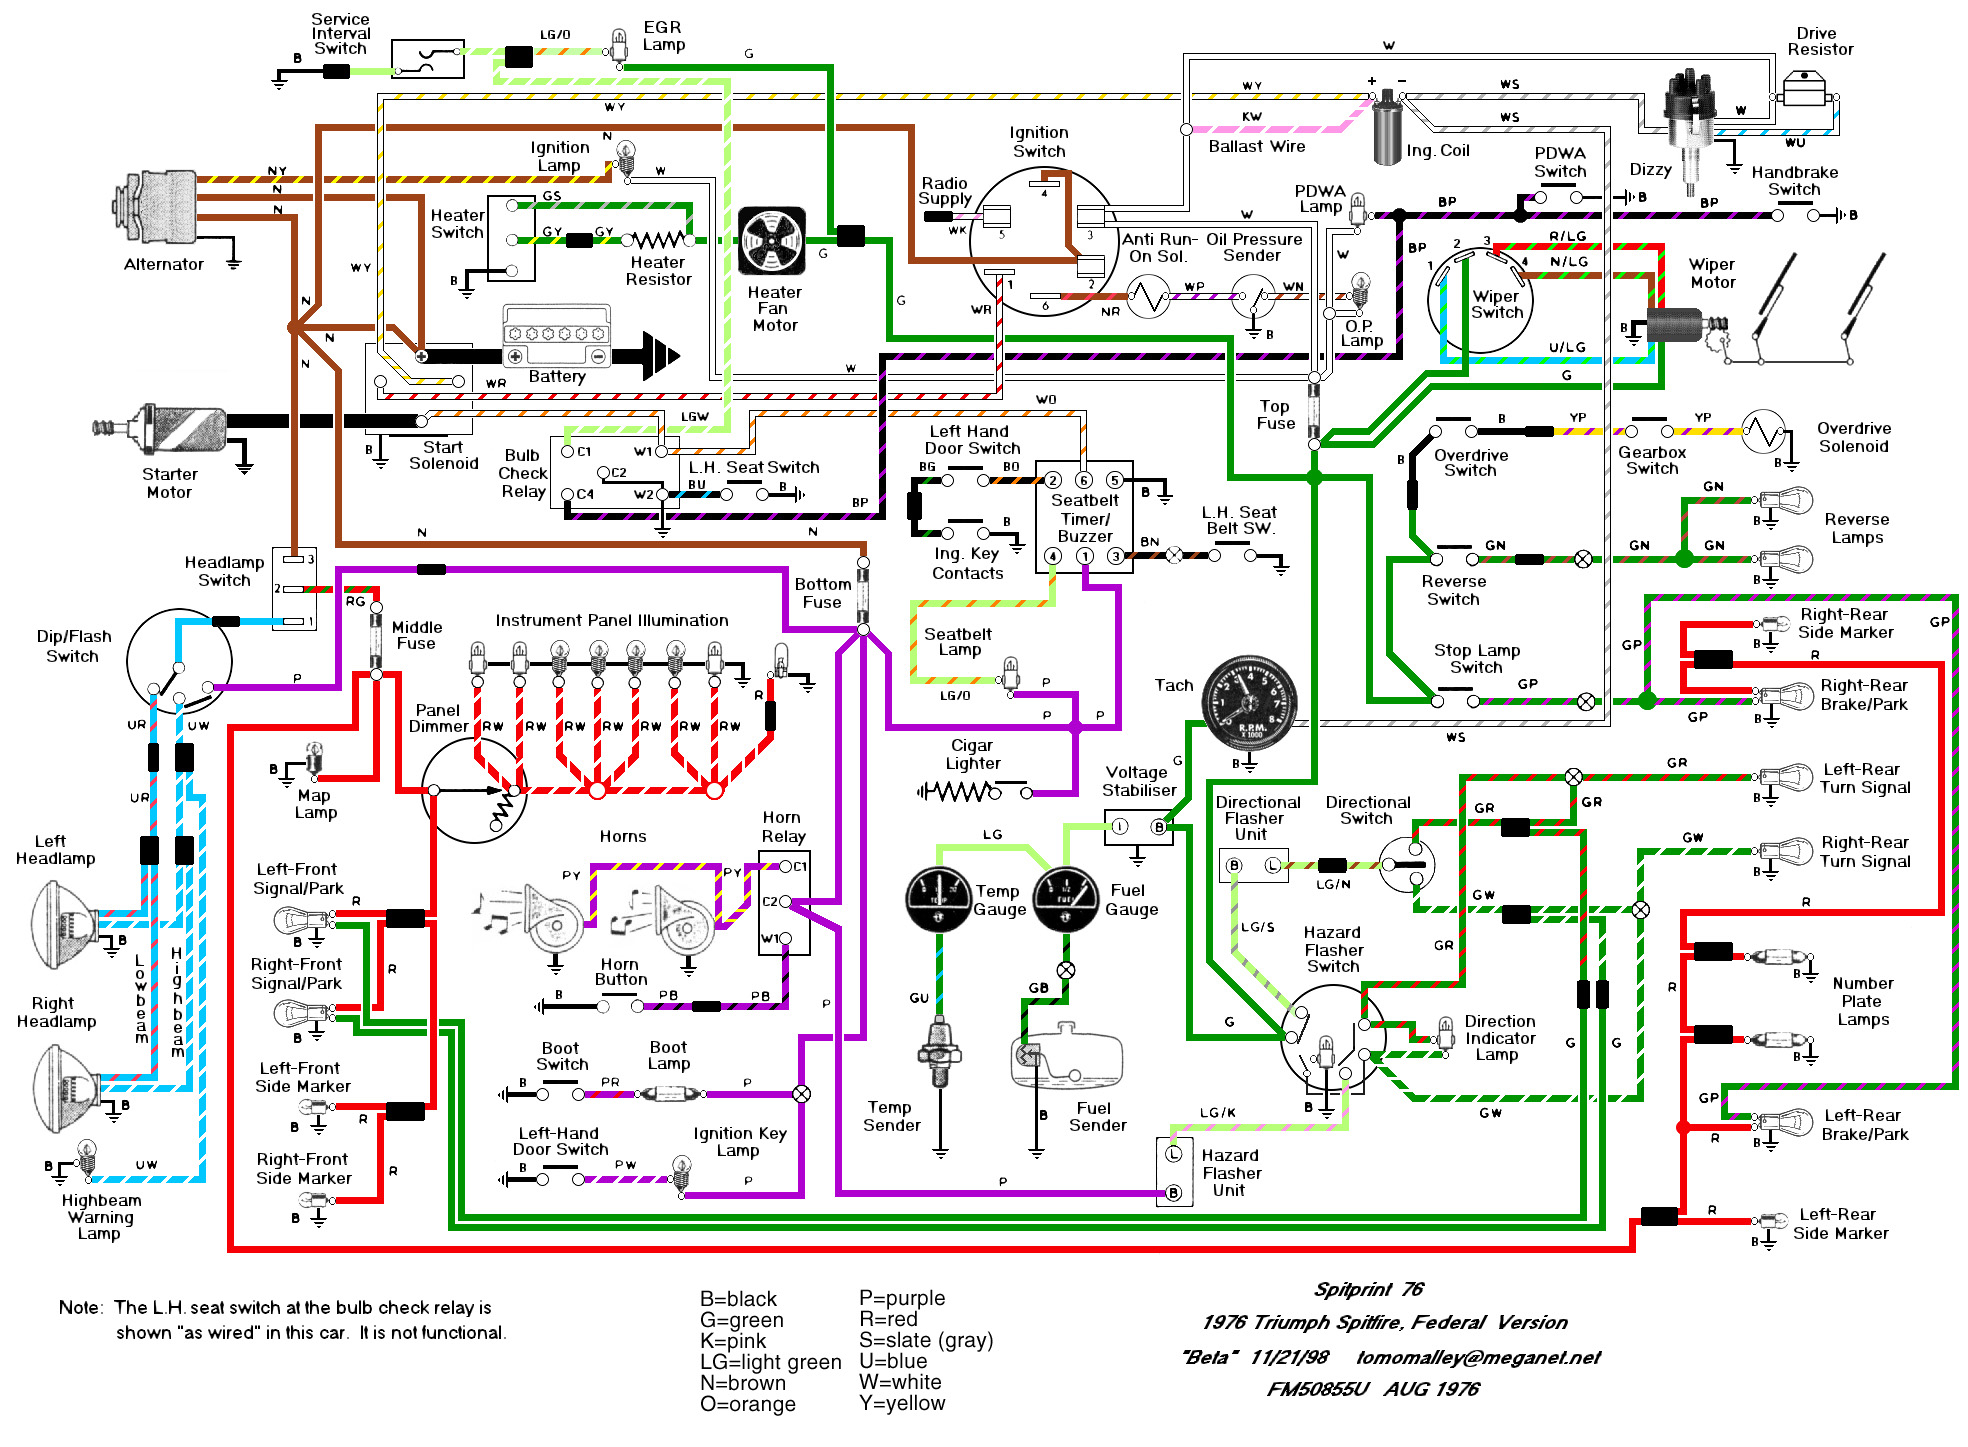 In wiring diagram wiring diagrams schematics wiring schematics and diagrams triumph spitfire gt6 herald a 76 spitfire download this in wiring diagram asfbconference2016 Gallery